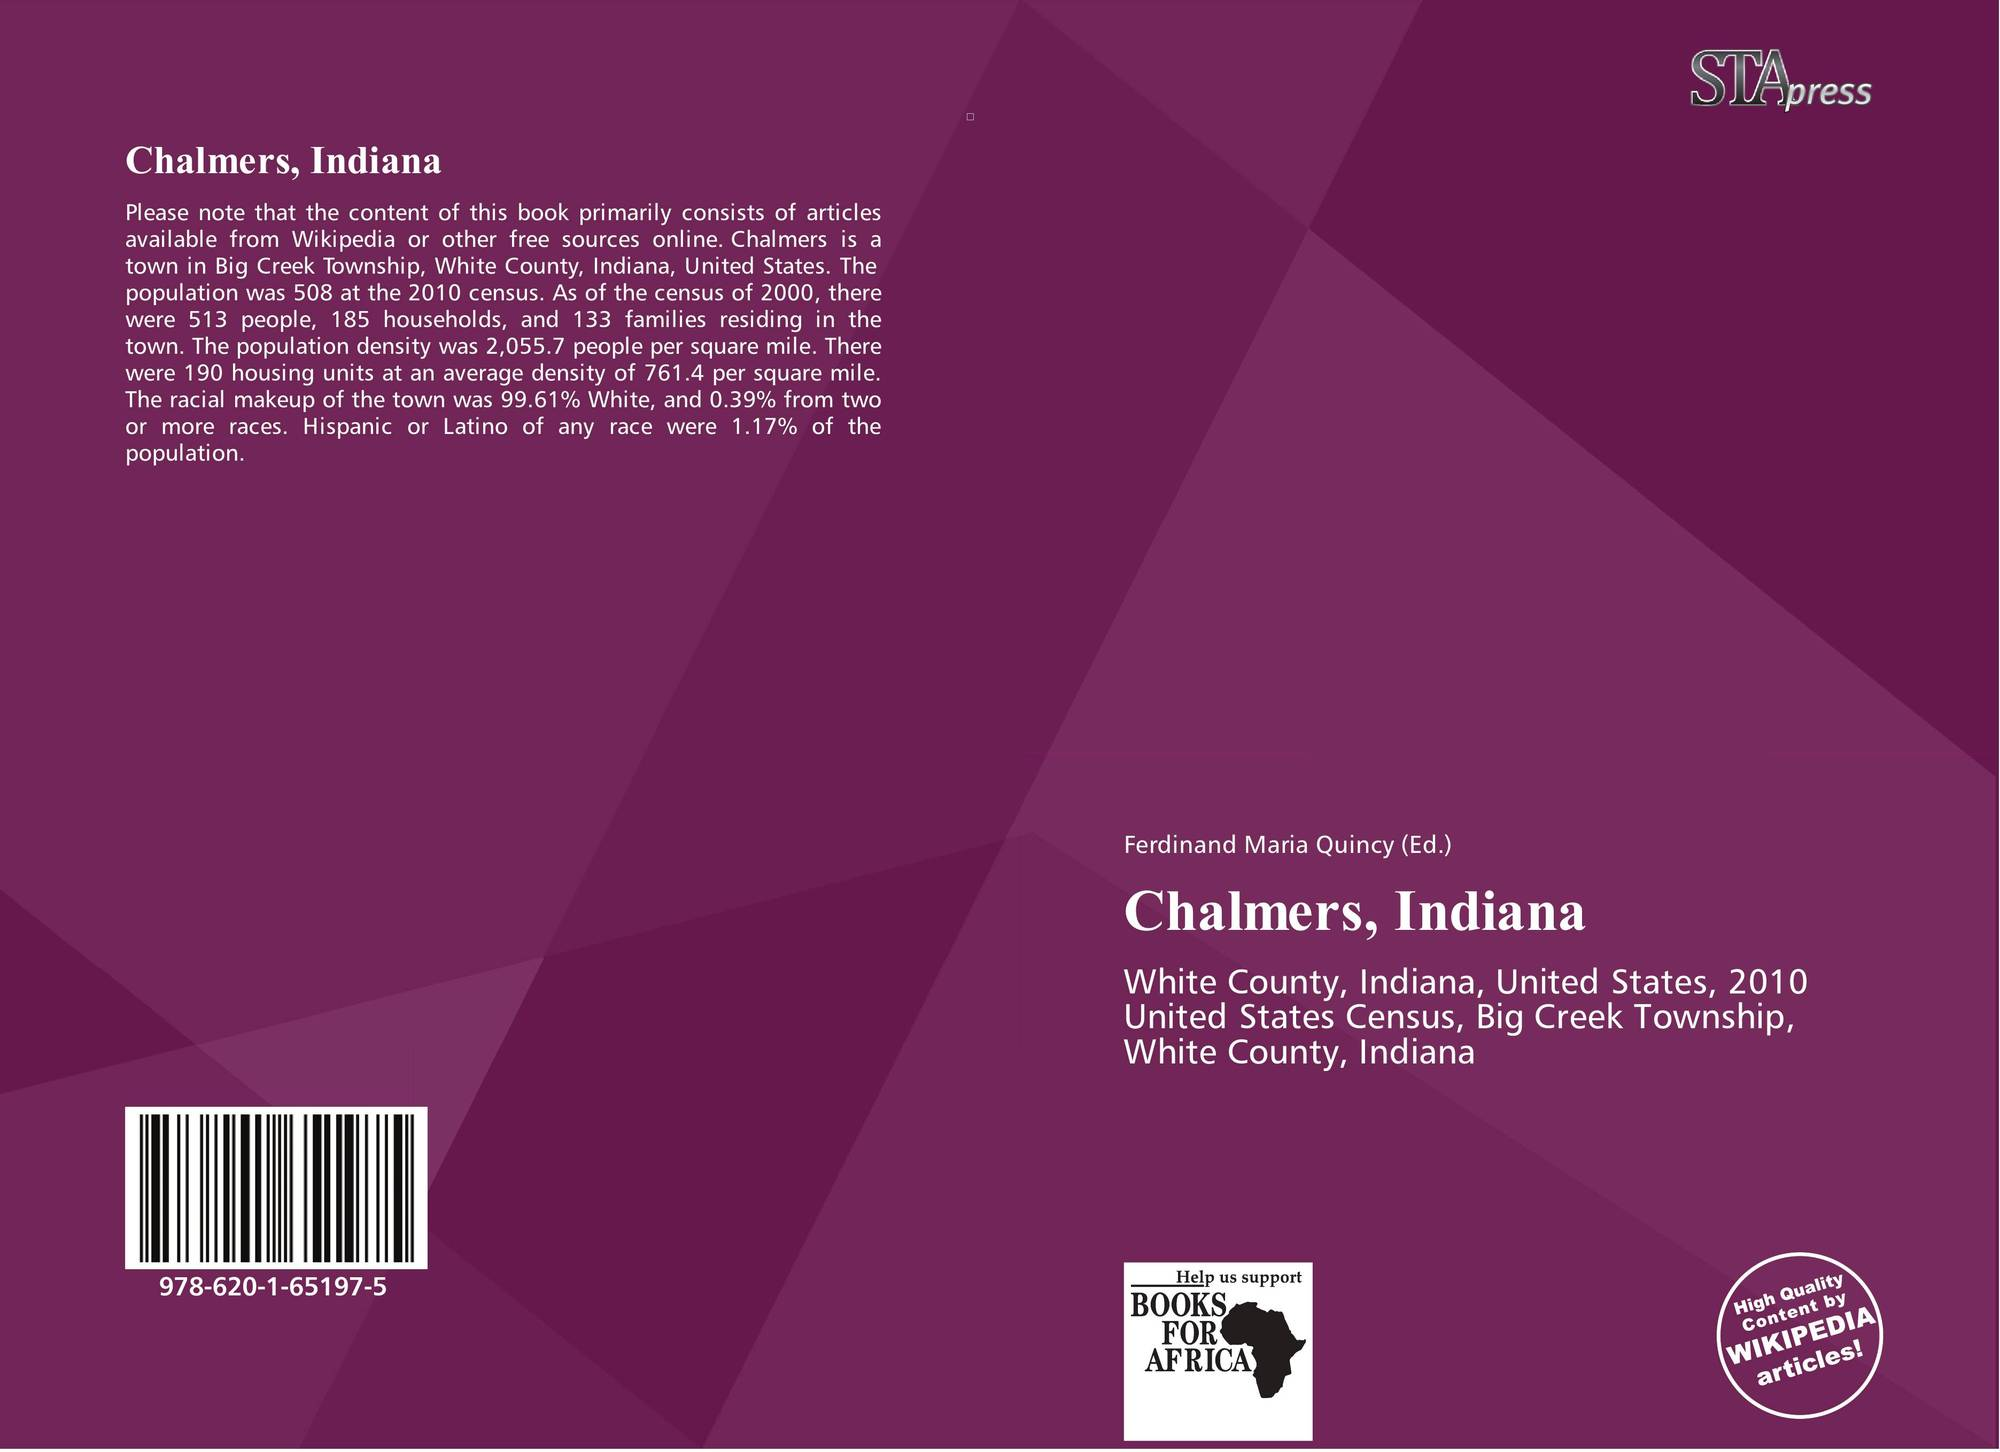 Indiana white county chalmers - Bookcover Of Chalmers Indiana Omni Badge 9307e2201e5f762643a64561af3456be64a87707602f96b92ef18a9bbcada116 Chalmers Indiana White County